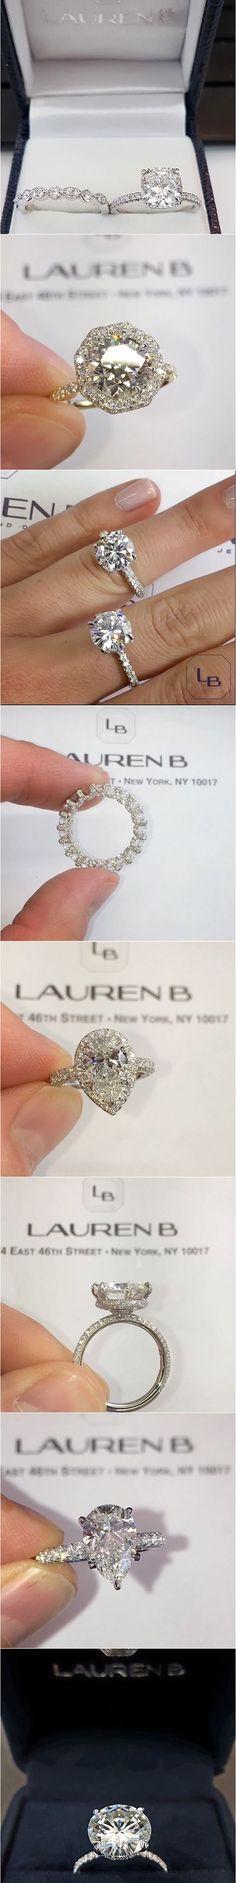 If you're in the market for engagement rings  Go check out @laurenbjewelry  Her rings are exceptional and the short videos are very well made! The music in the videos makes me think much more about what will take place after the ceremony and reception  She clearly sees my vision. Great account! Here […]